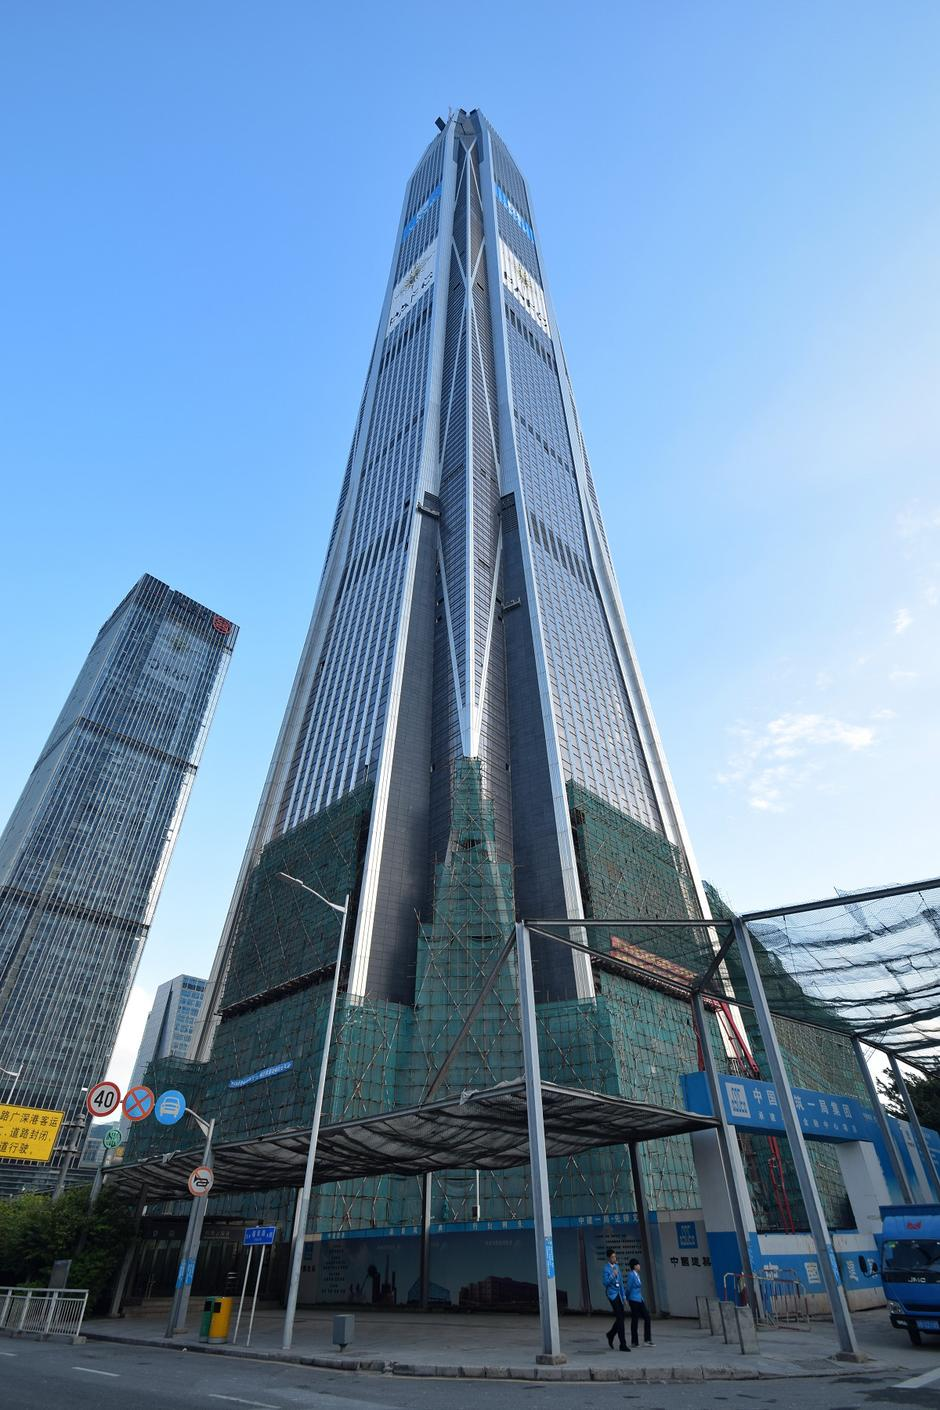 Financijski centar Ping u Shenzhenu | Author: Wikipedia